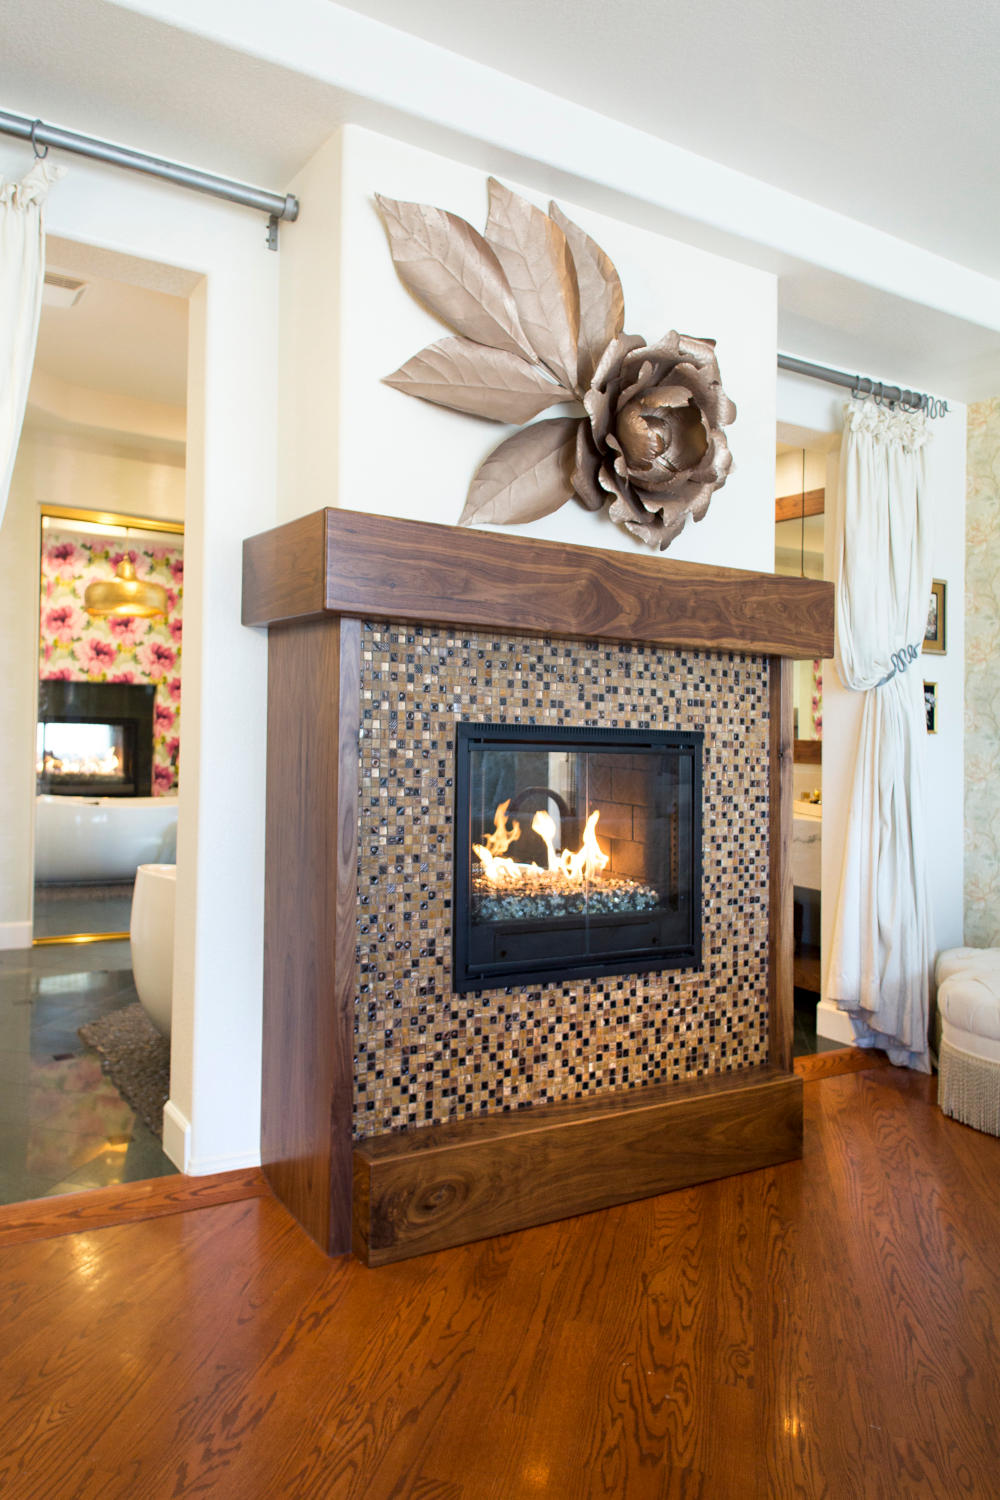 Master bedroom fireplace with wood mantel, mosaic tile suround and metal flower decor above.